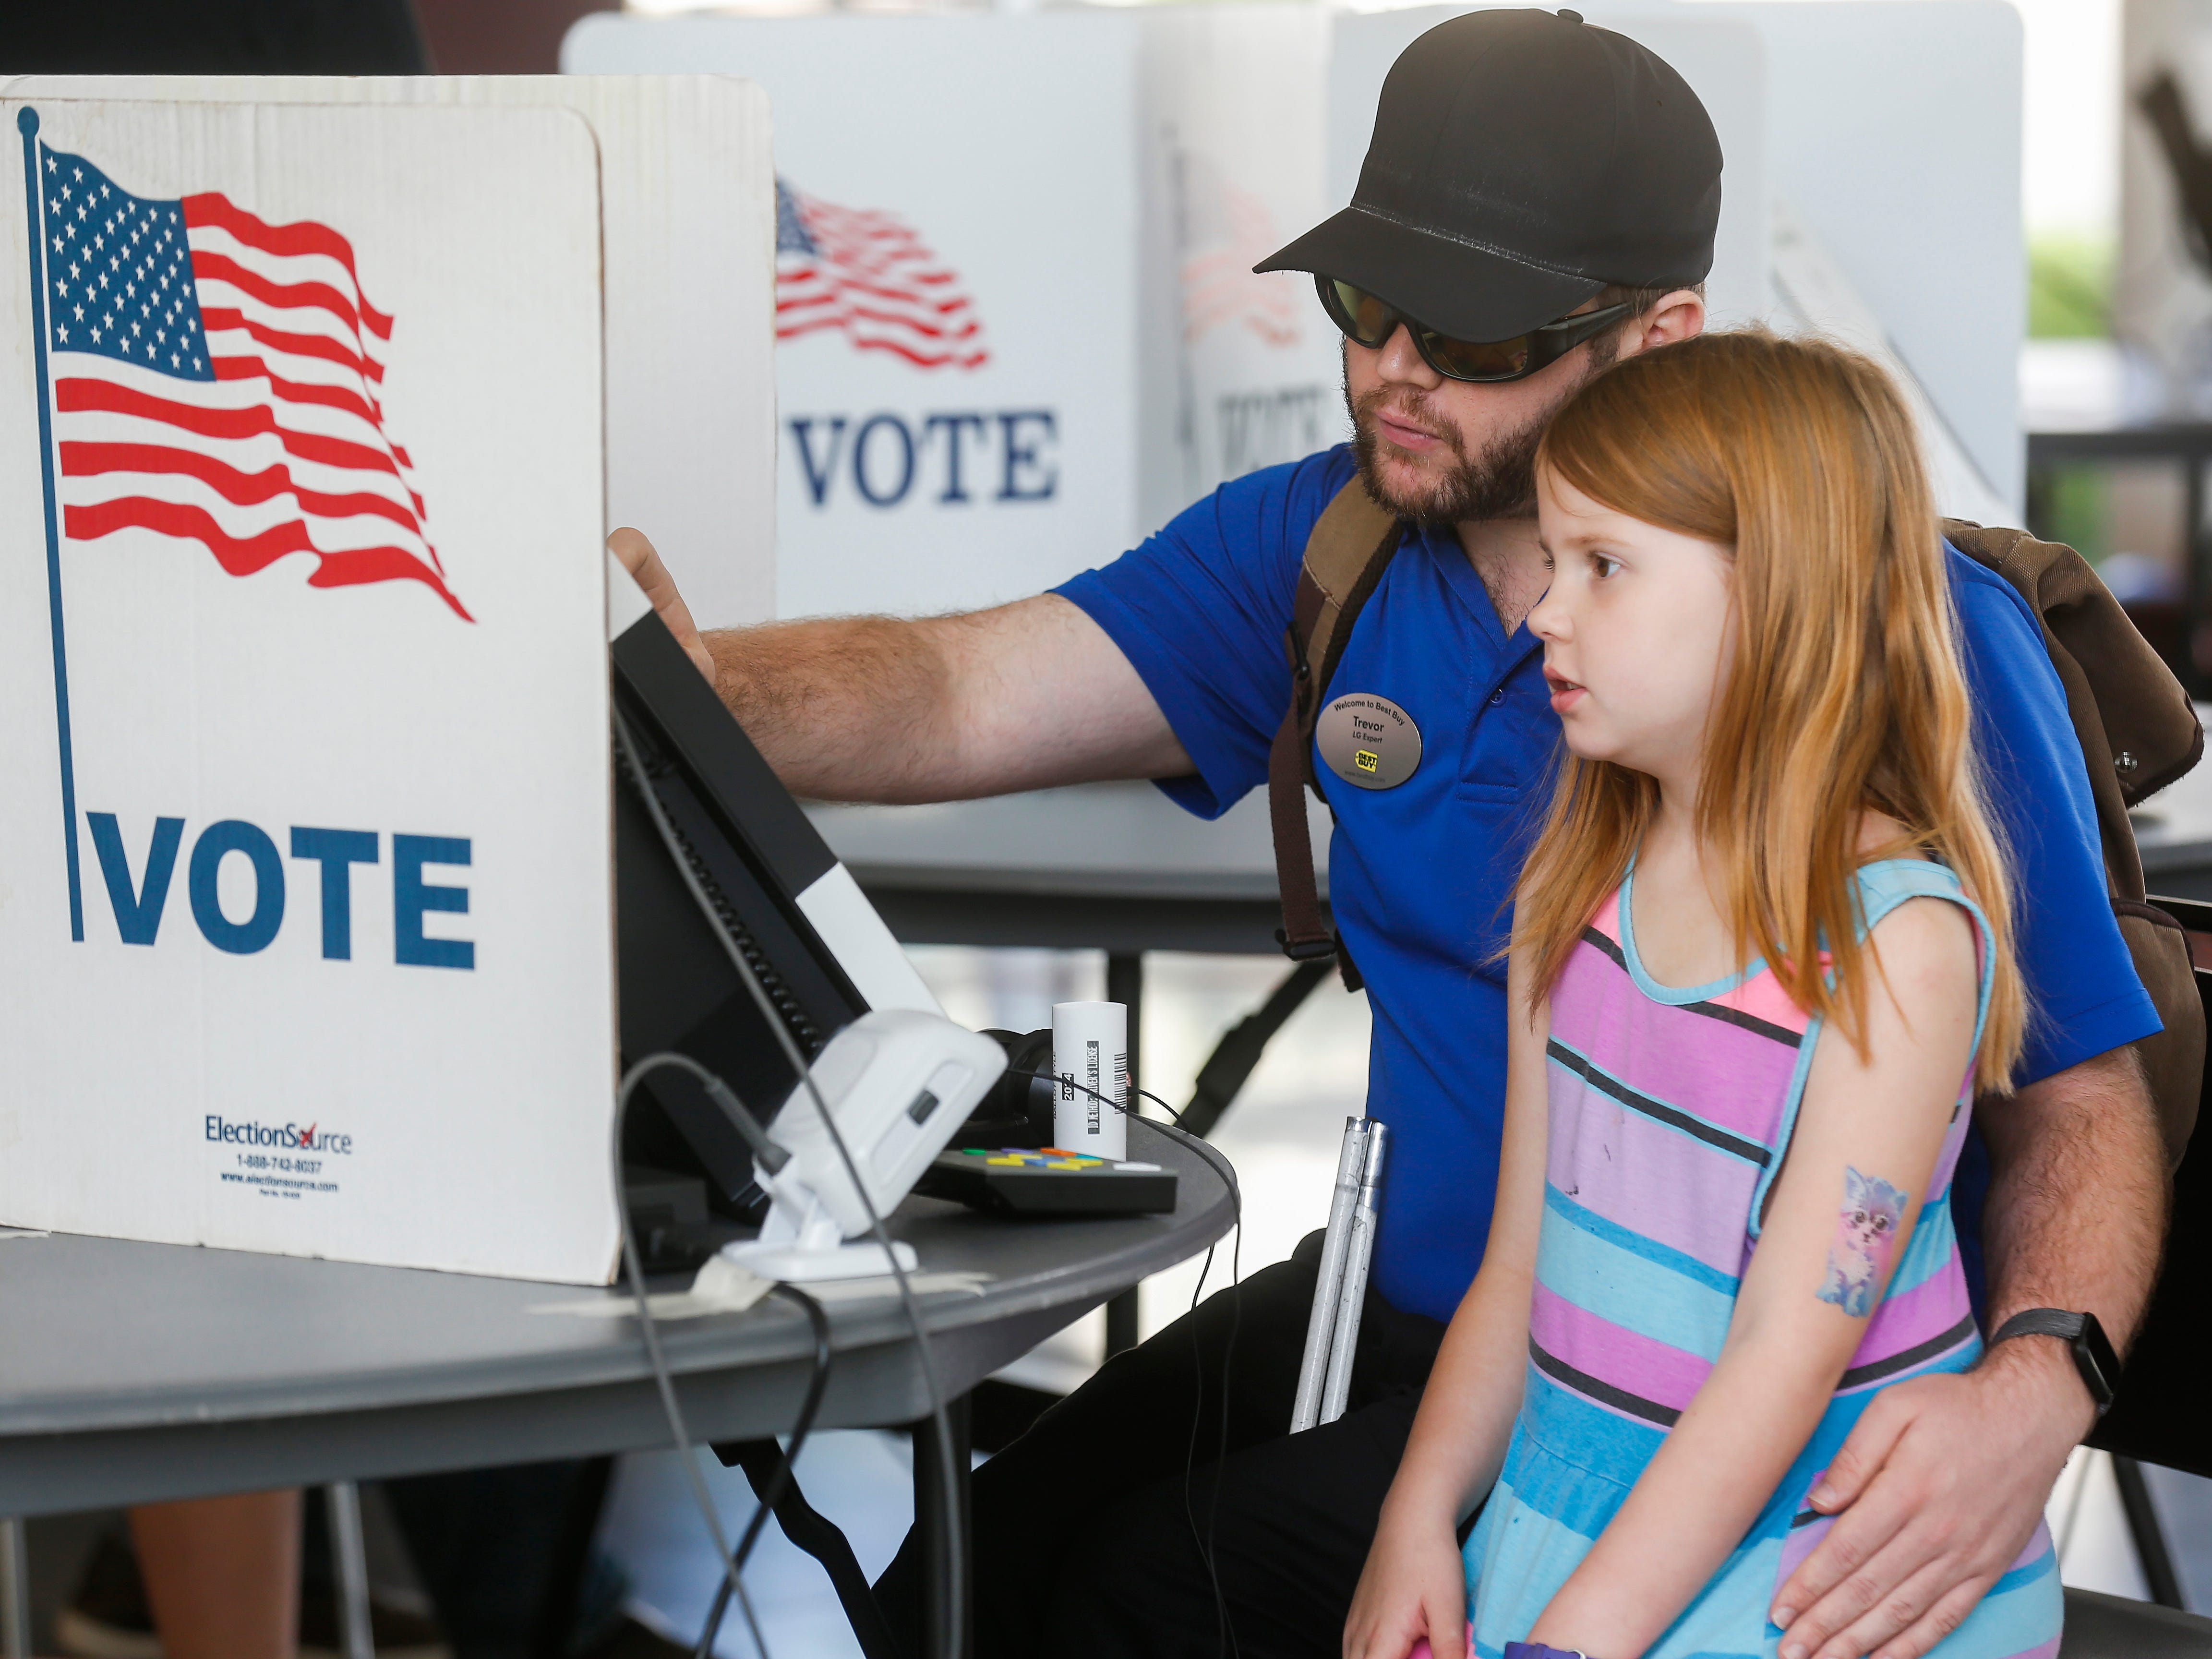 Trevor Knoblauch votes with his daughter Aiowin Knoblauch, 7, at the Davis-Harrington Welcome Center at Missouri State University on Tuesday, Aug. 7, 2018.